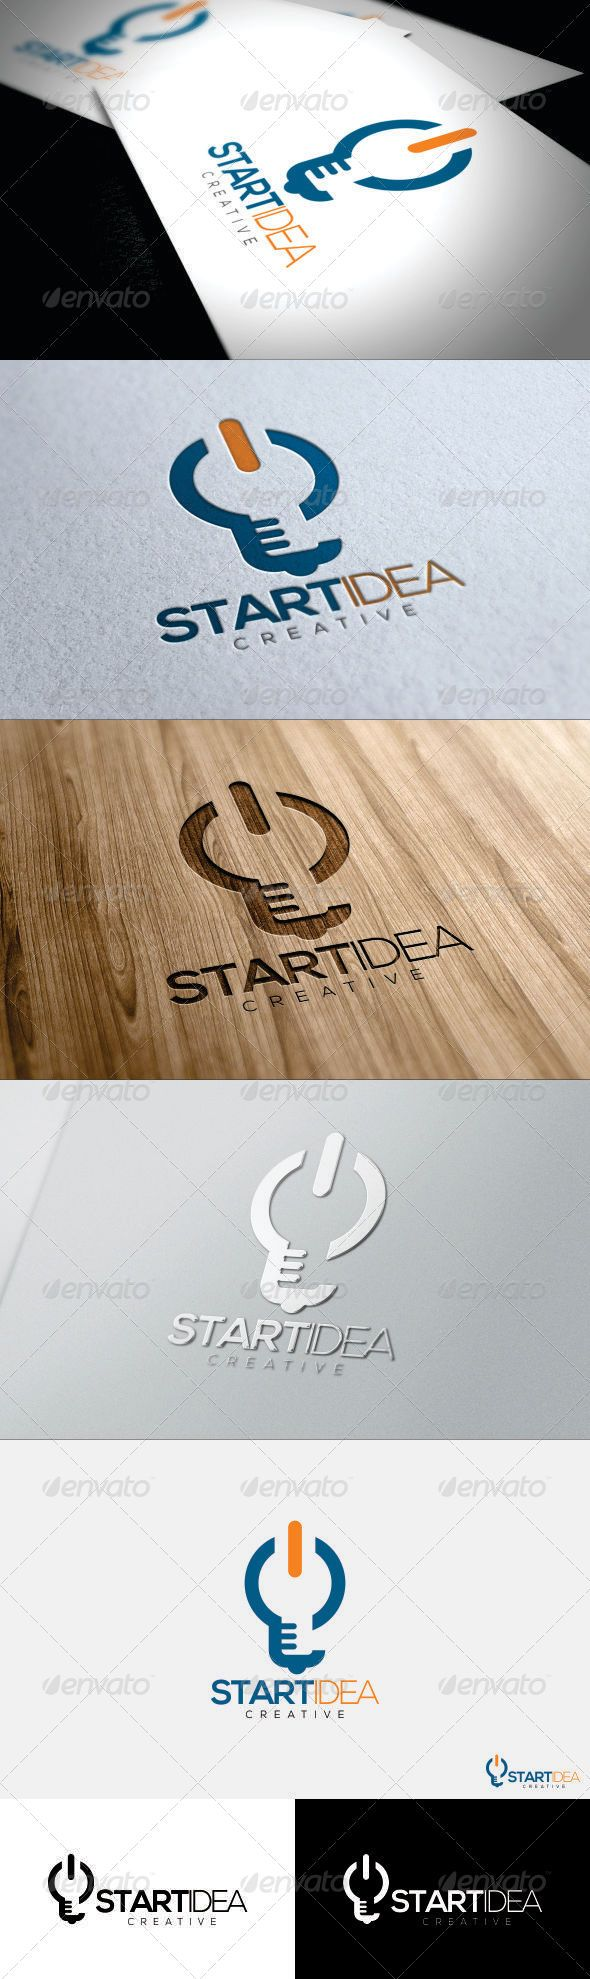 Start Ideas Logo #GraphicRiver Easy To Edit Layered CDR, AI, EPS include Scale Logo To Any Size